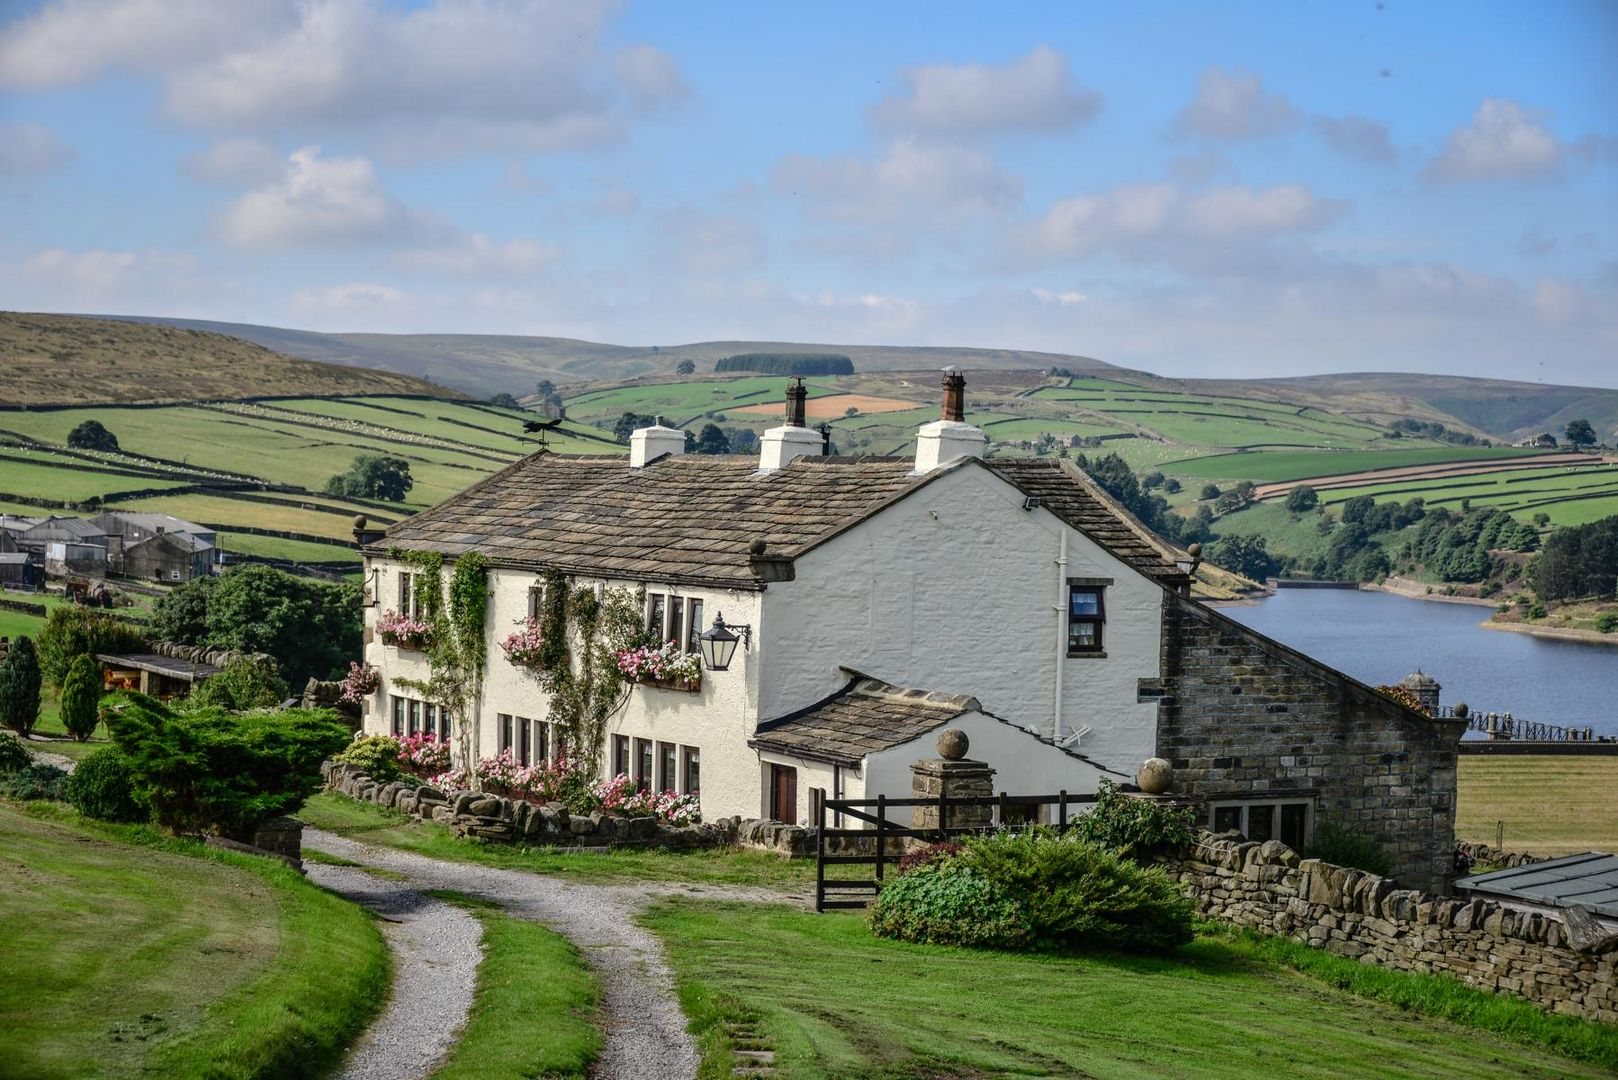 Hill Top House nr. Haworth, West Yorkshire